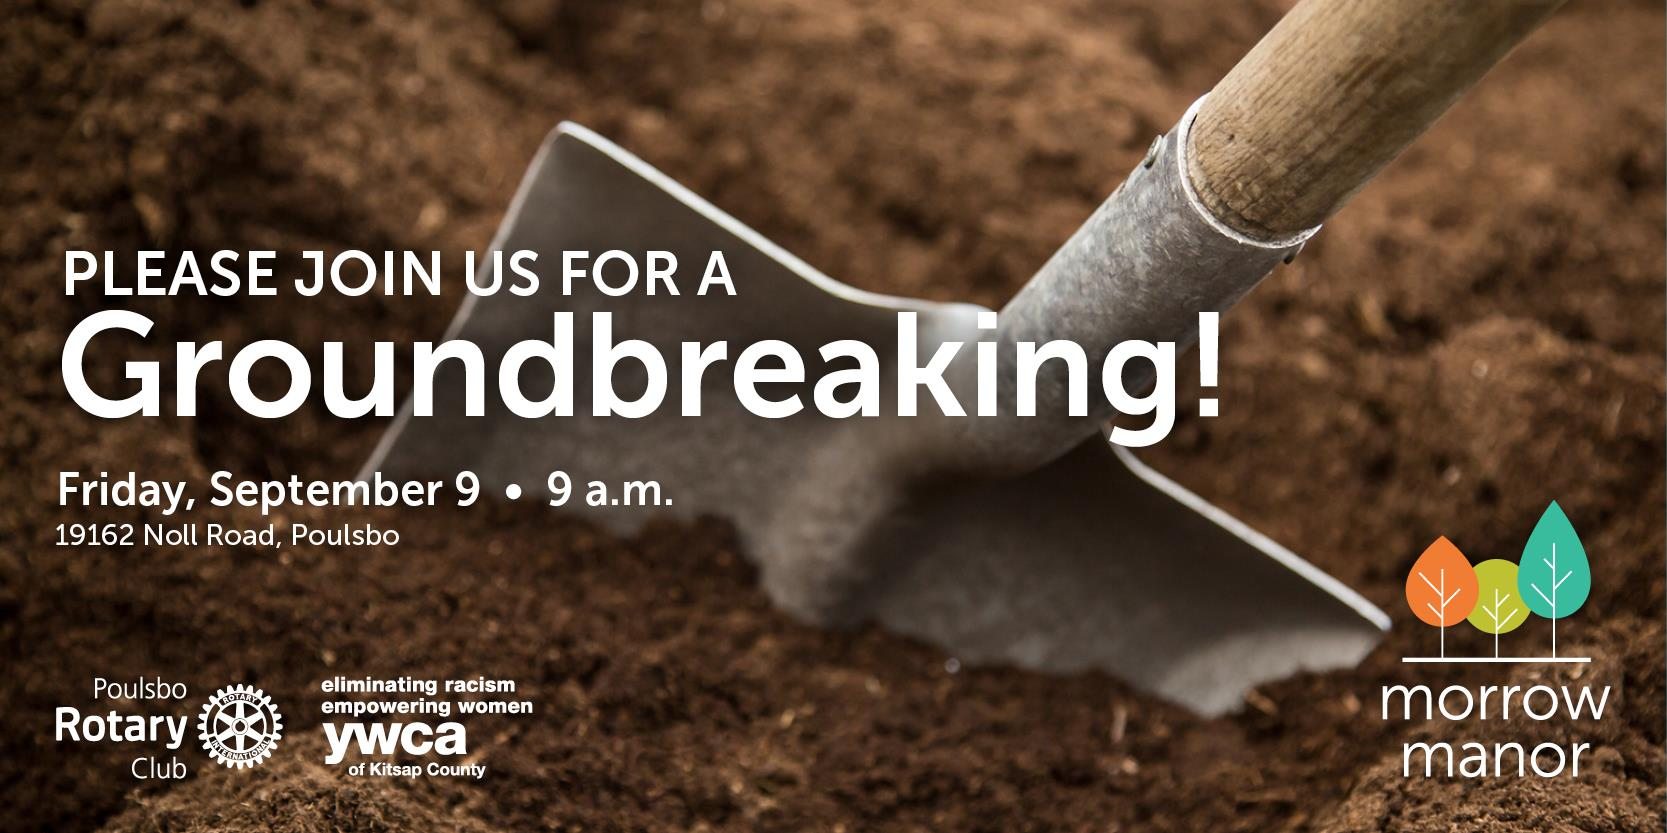 Morrow Manor groundbreaking Sept 9, 2016